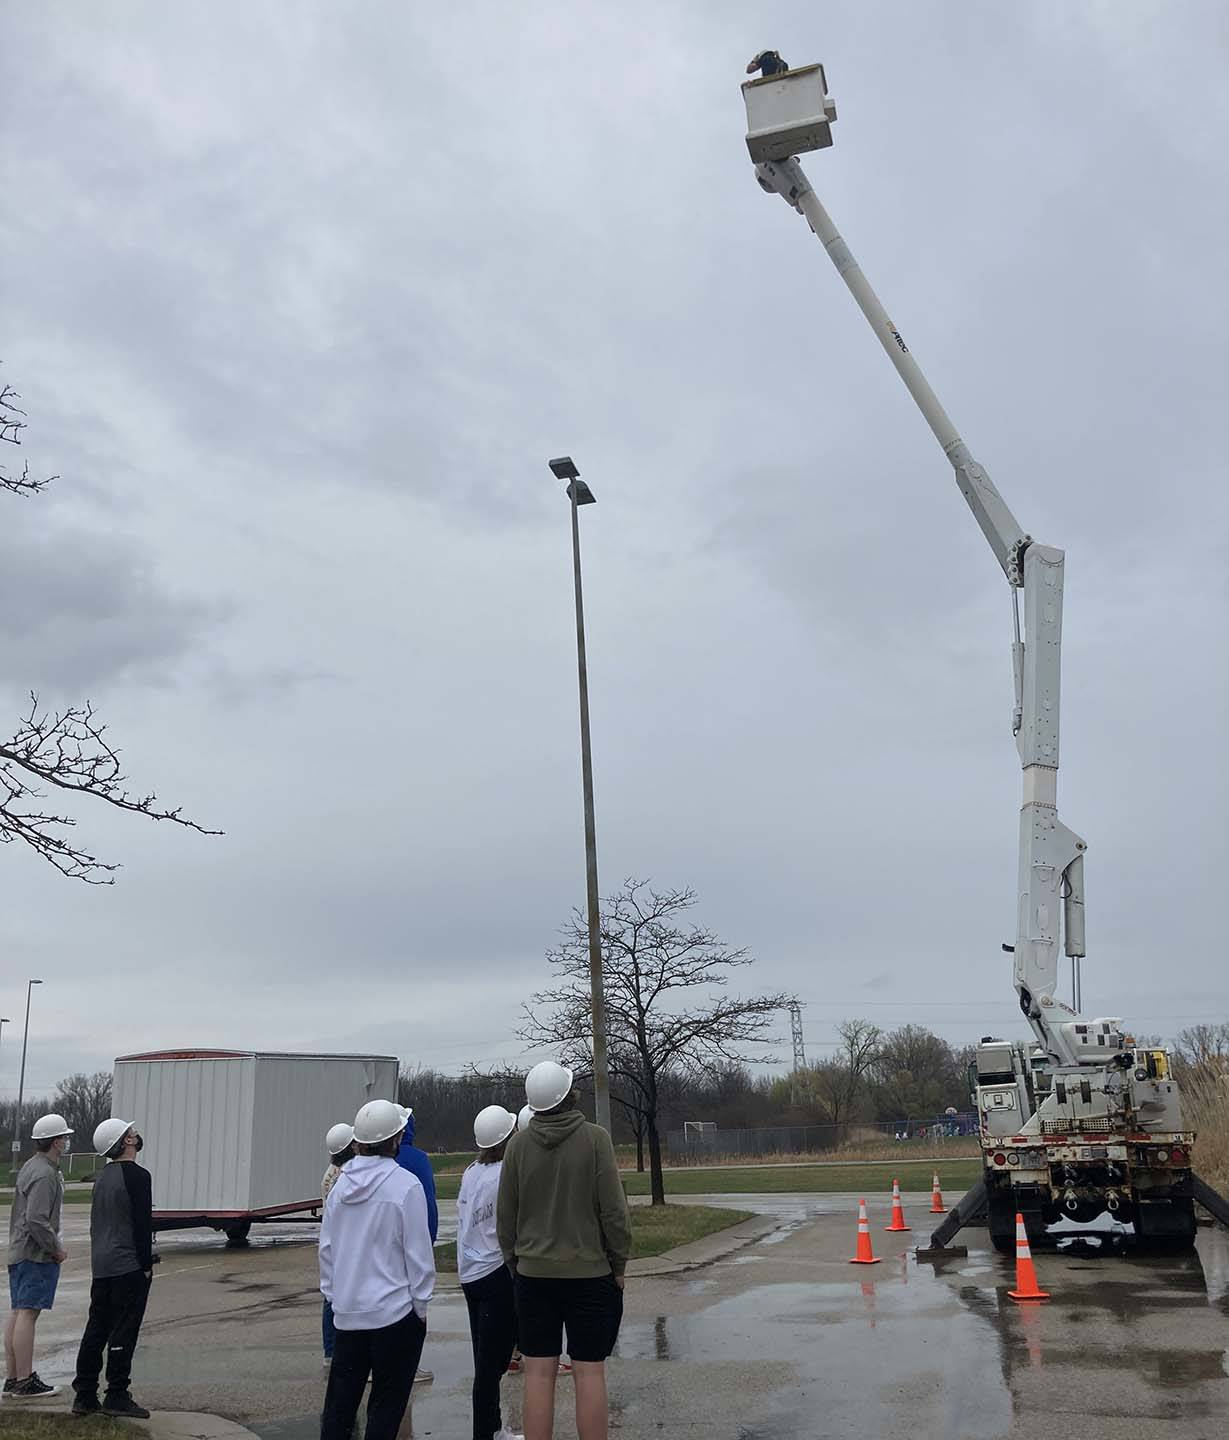 Alliant Energy presents high power line demo to ACE students